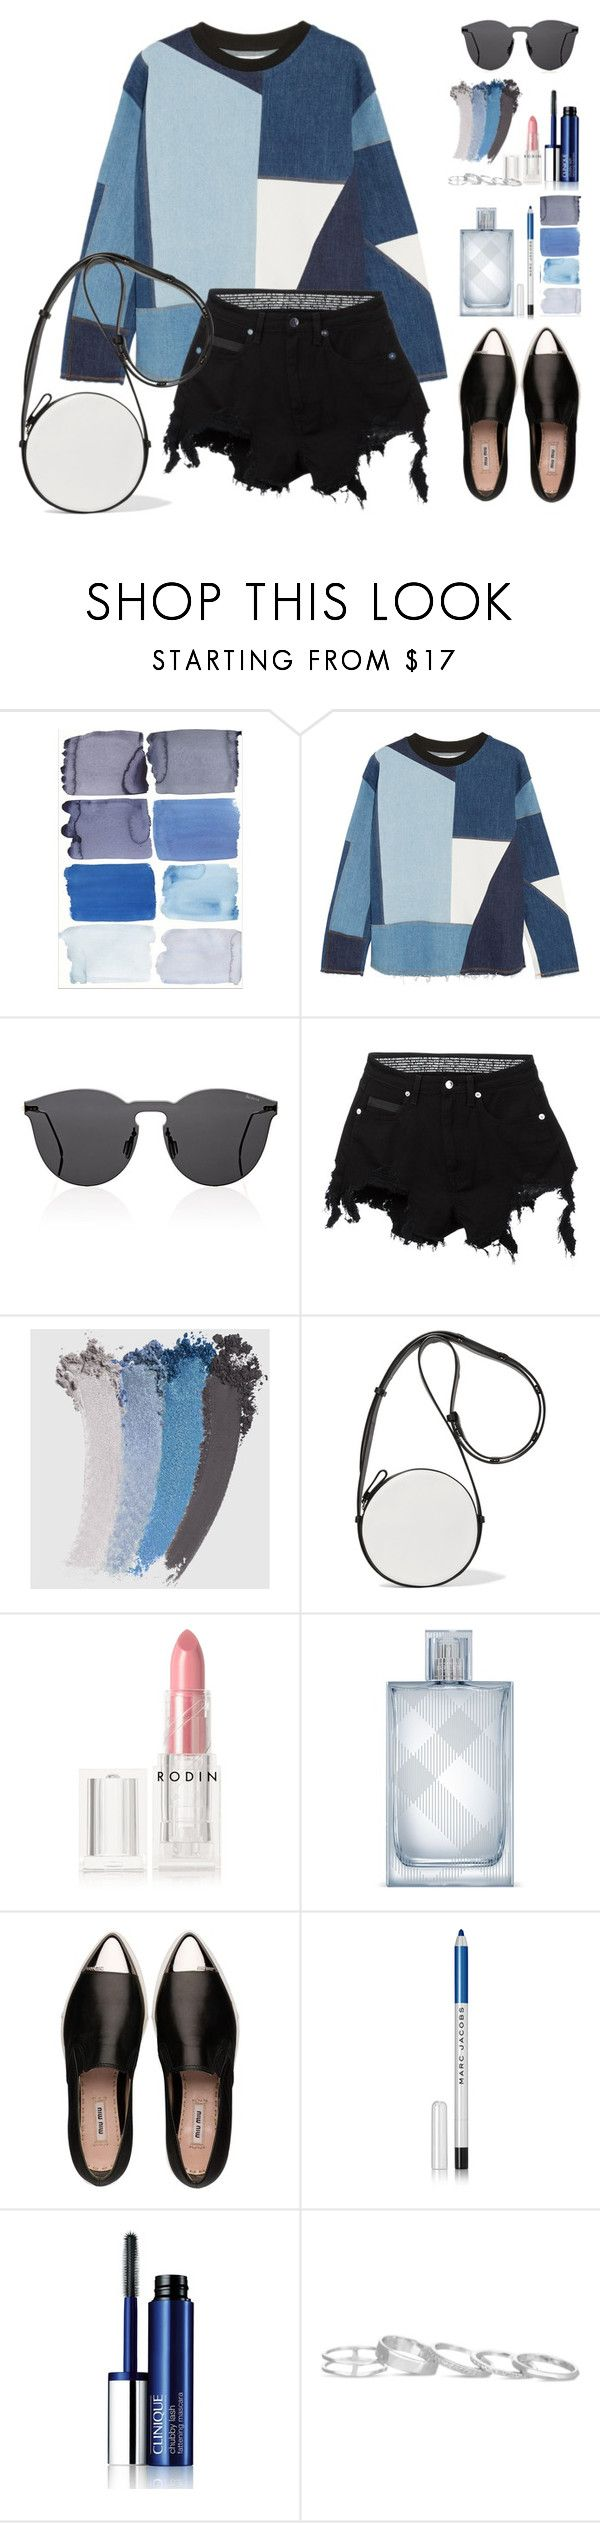 """""""Young Seoul"""" by silverheartwood ❤ liked on Polyvore featuring Victoria, Victoria Beckham, Illesteva, County Of Milan, Gucci, Diane Von Furstenberg, Rodin, Burberry, Miu Miu, Marc Jacobs and Clinique"""